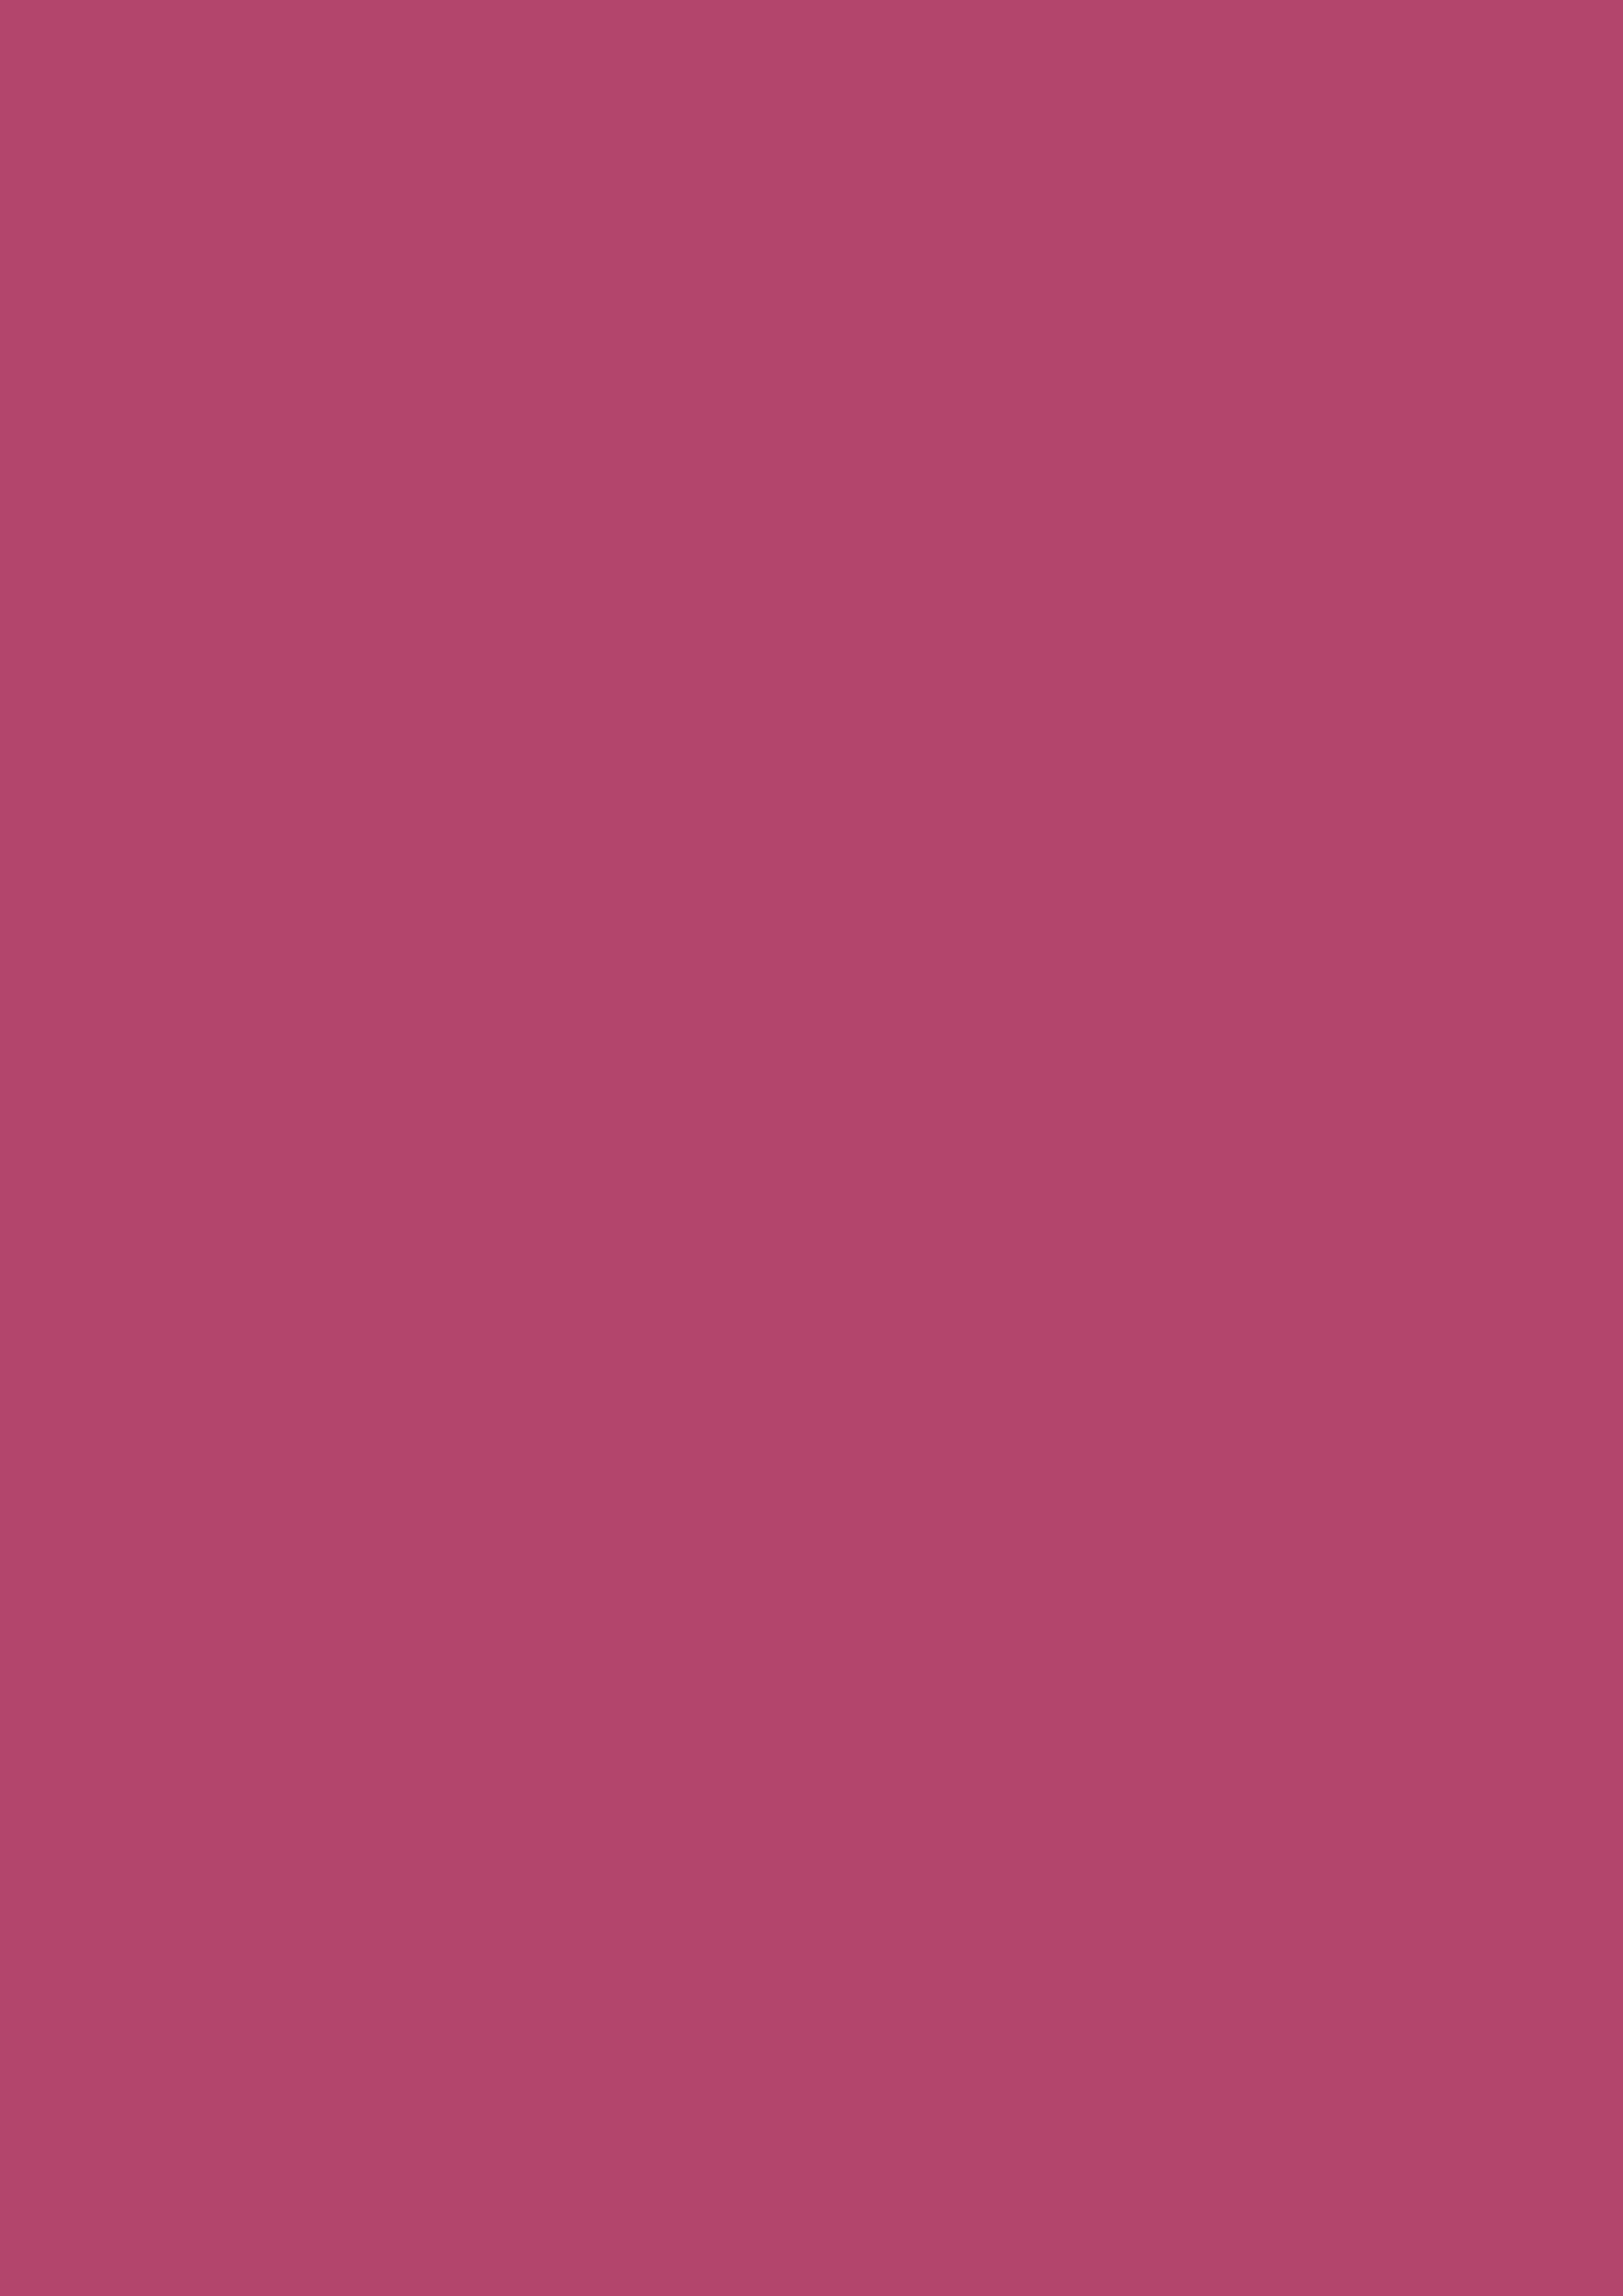 2480x3508 Raspberry Rose Solid Color Background